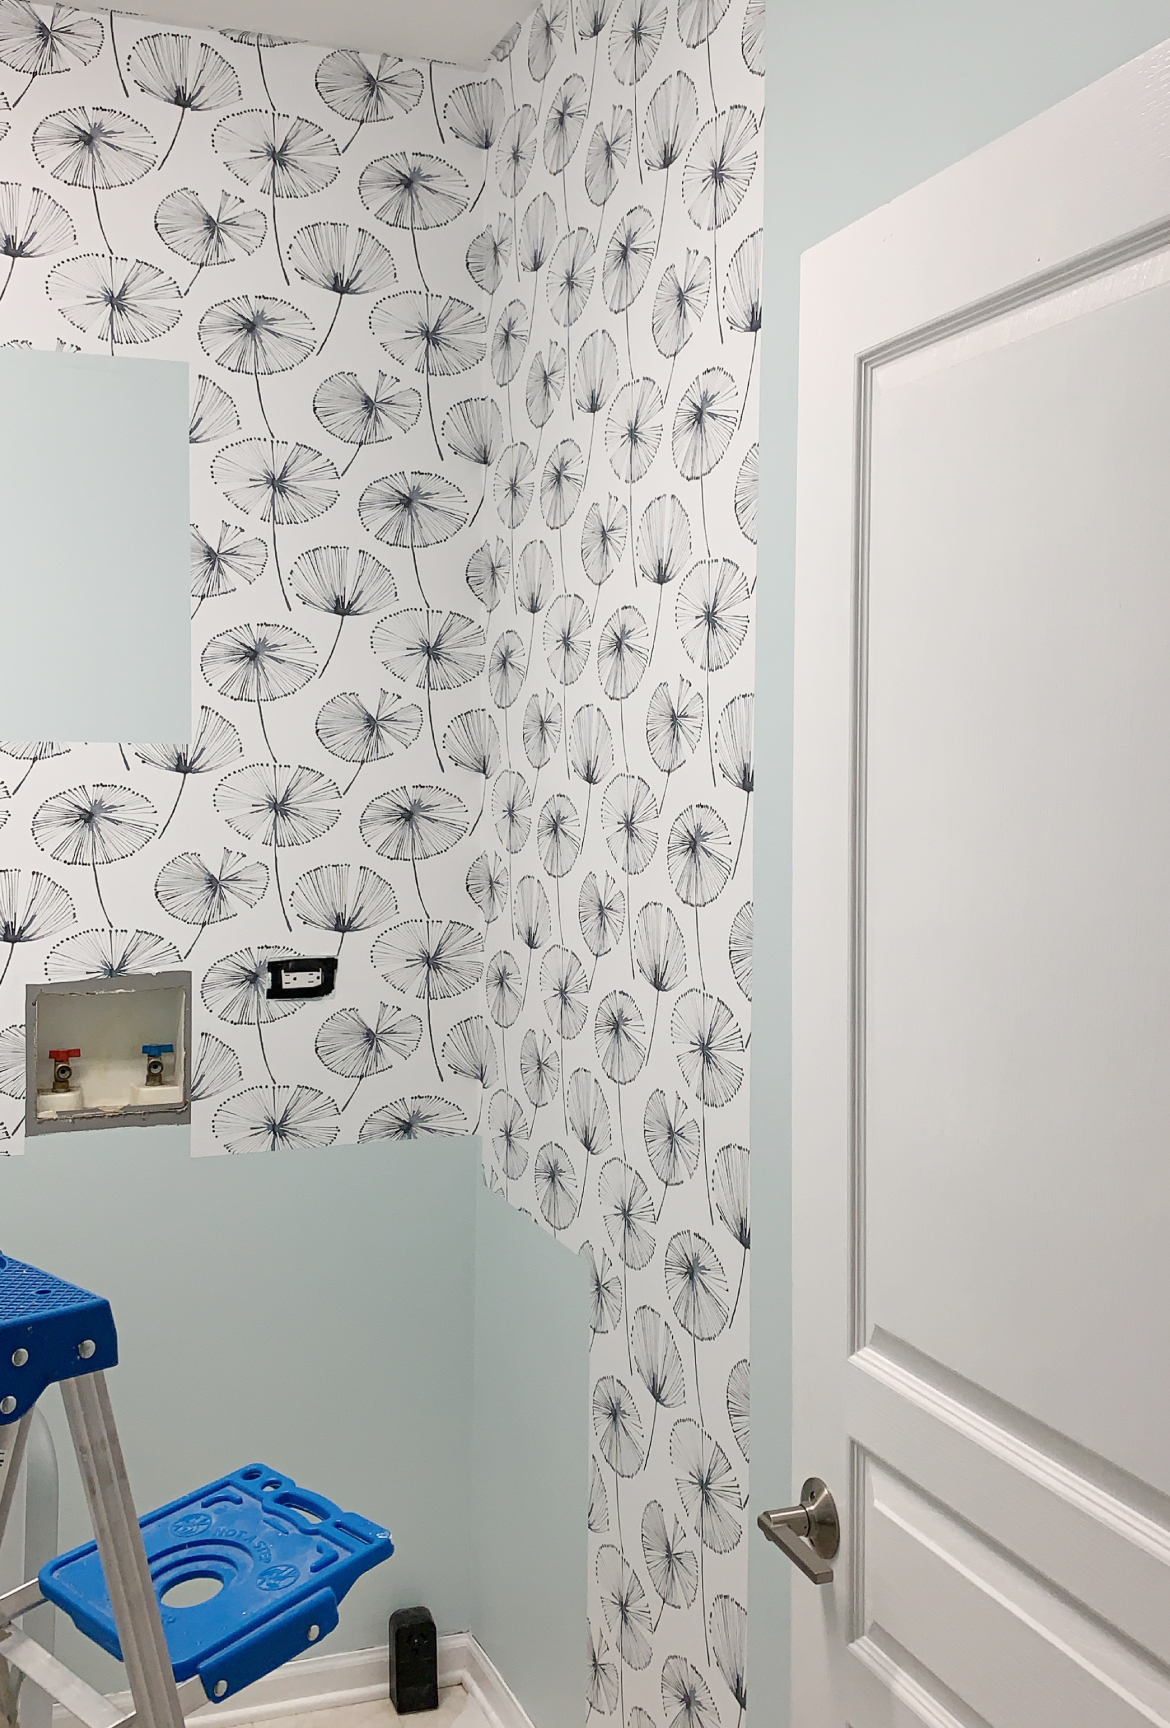 Laundry room makeover process - wallpaper